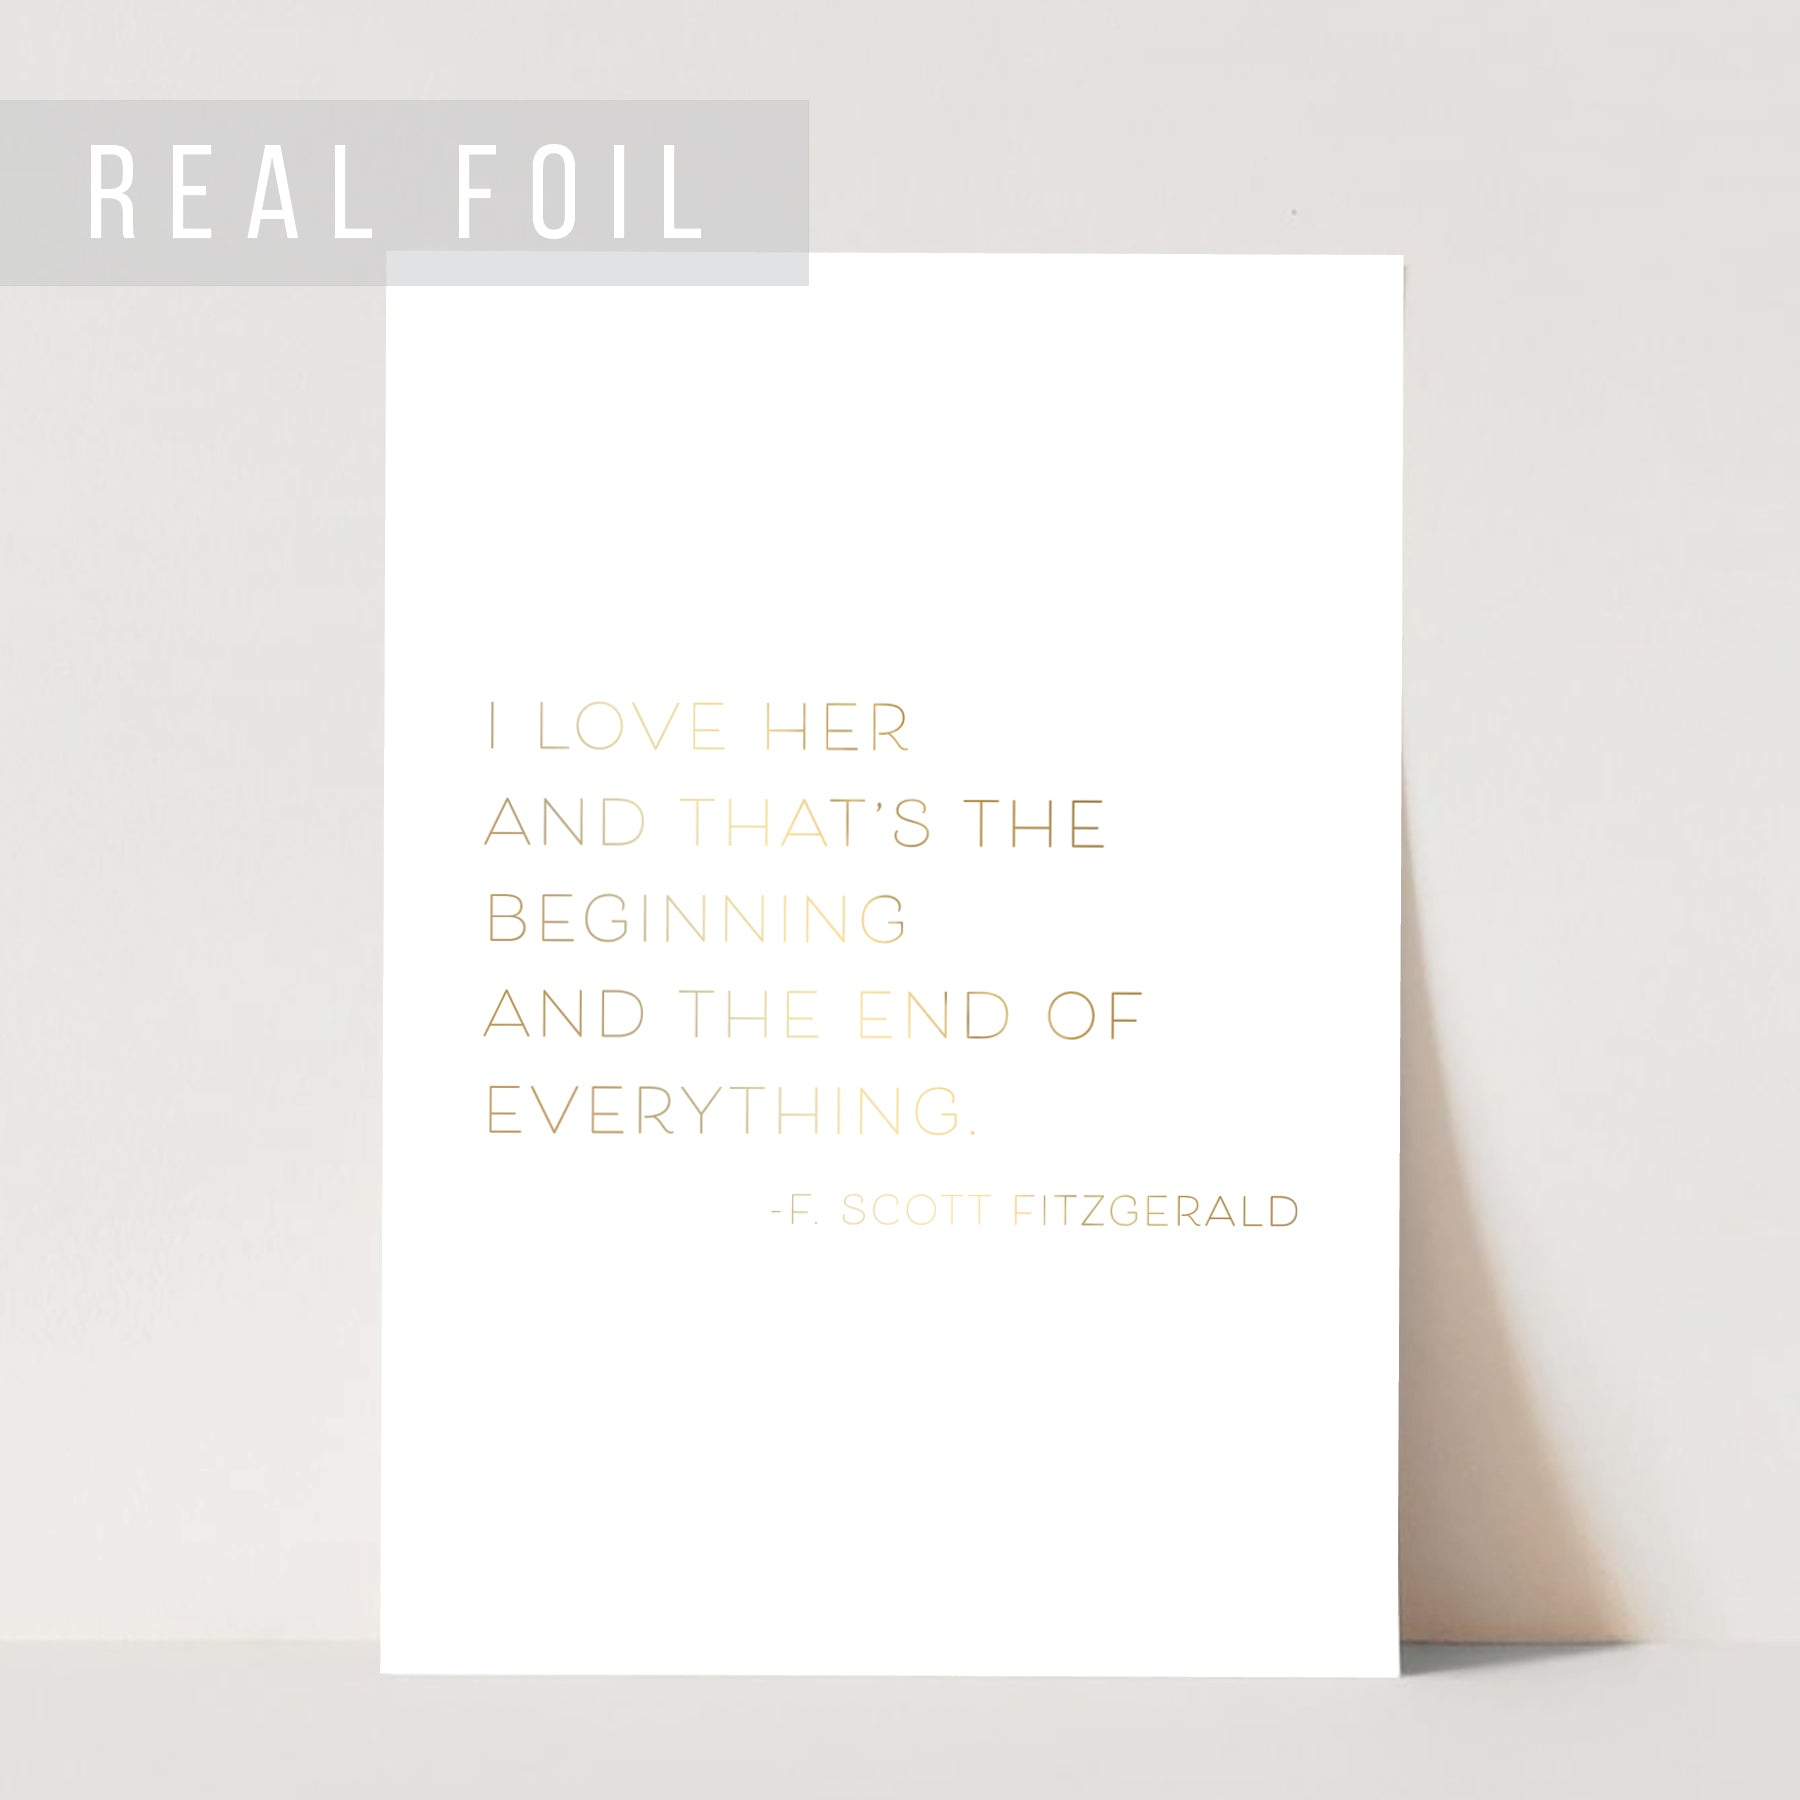 I Love Her and That's the Beginning and the End of Everything. -F. Scott Fitzgerald Quote Foiled Art Print